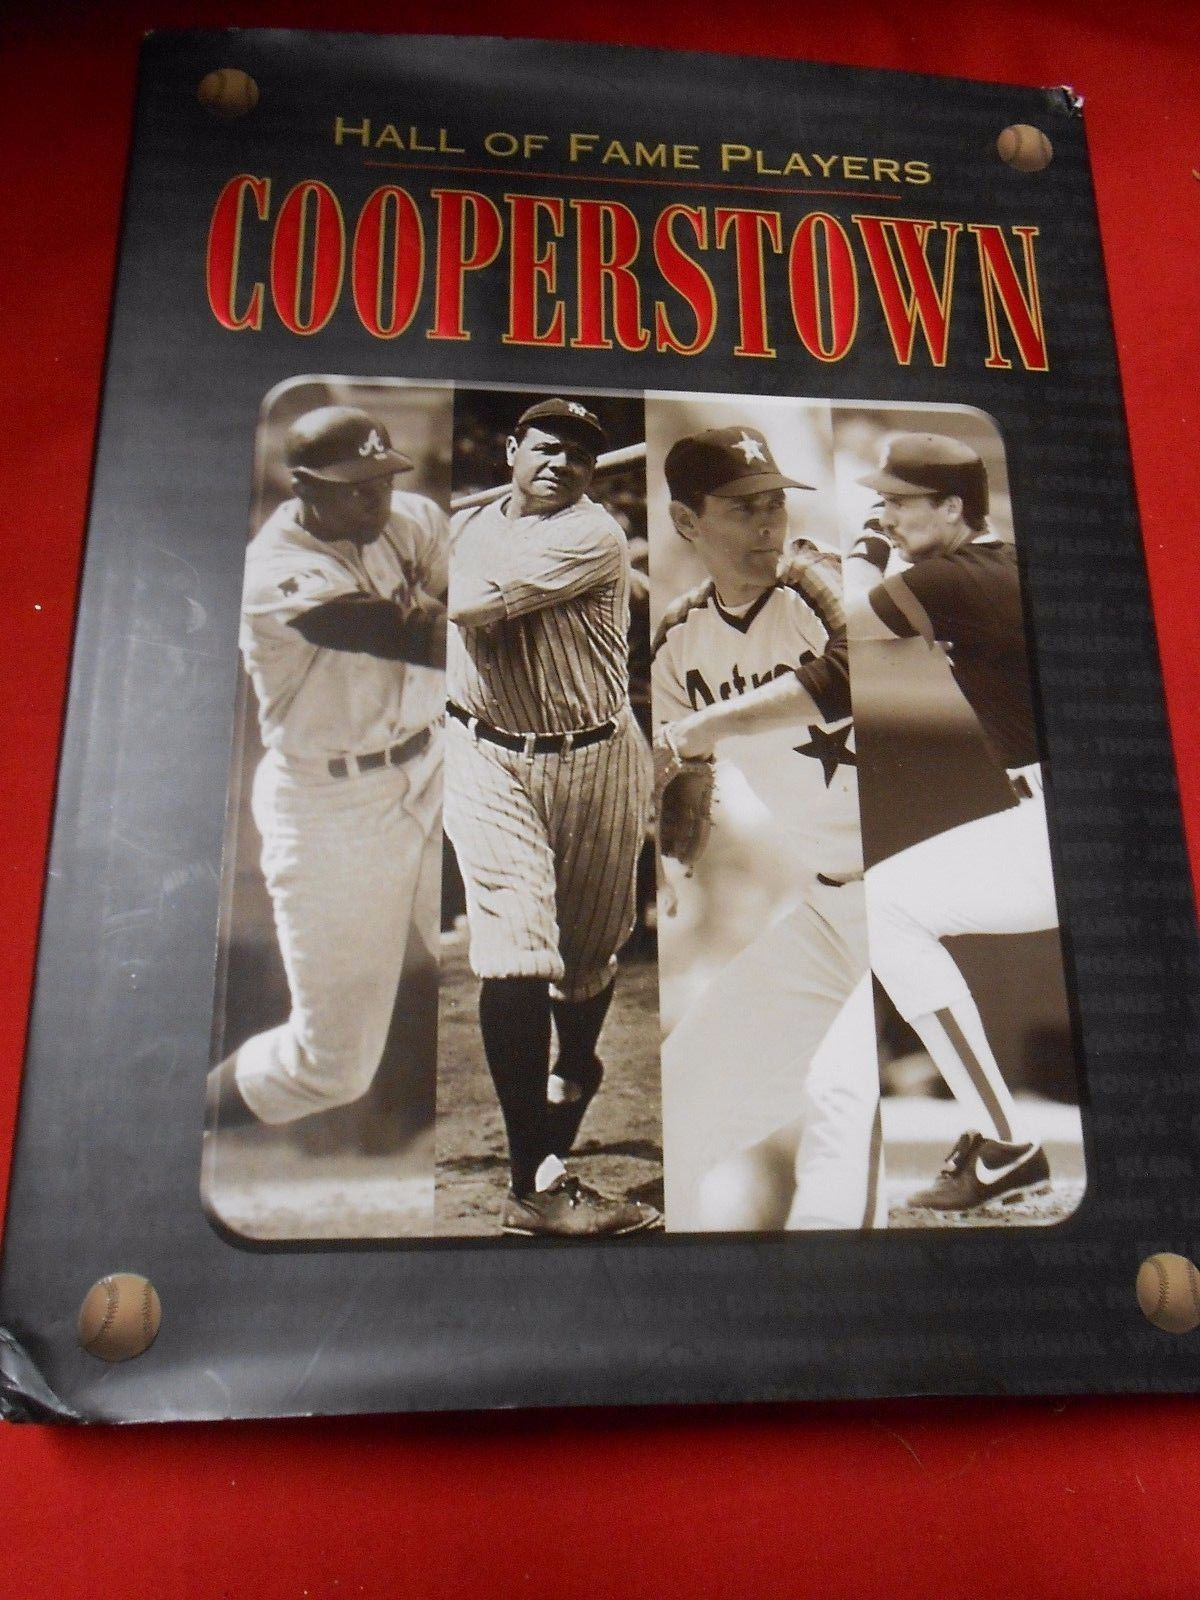 Primary image for Great BASEBALL Book- COOPERSTOWN The Hall of Fame Players...312 pages.......SALE